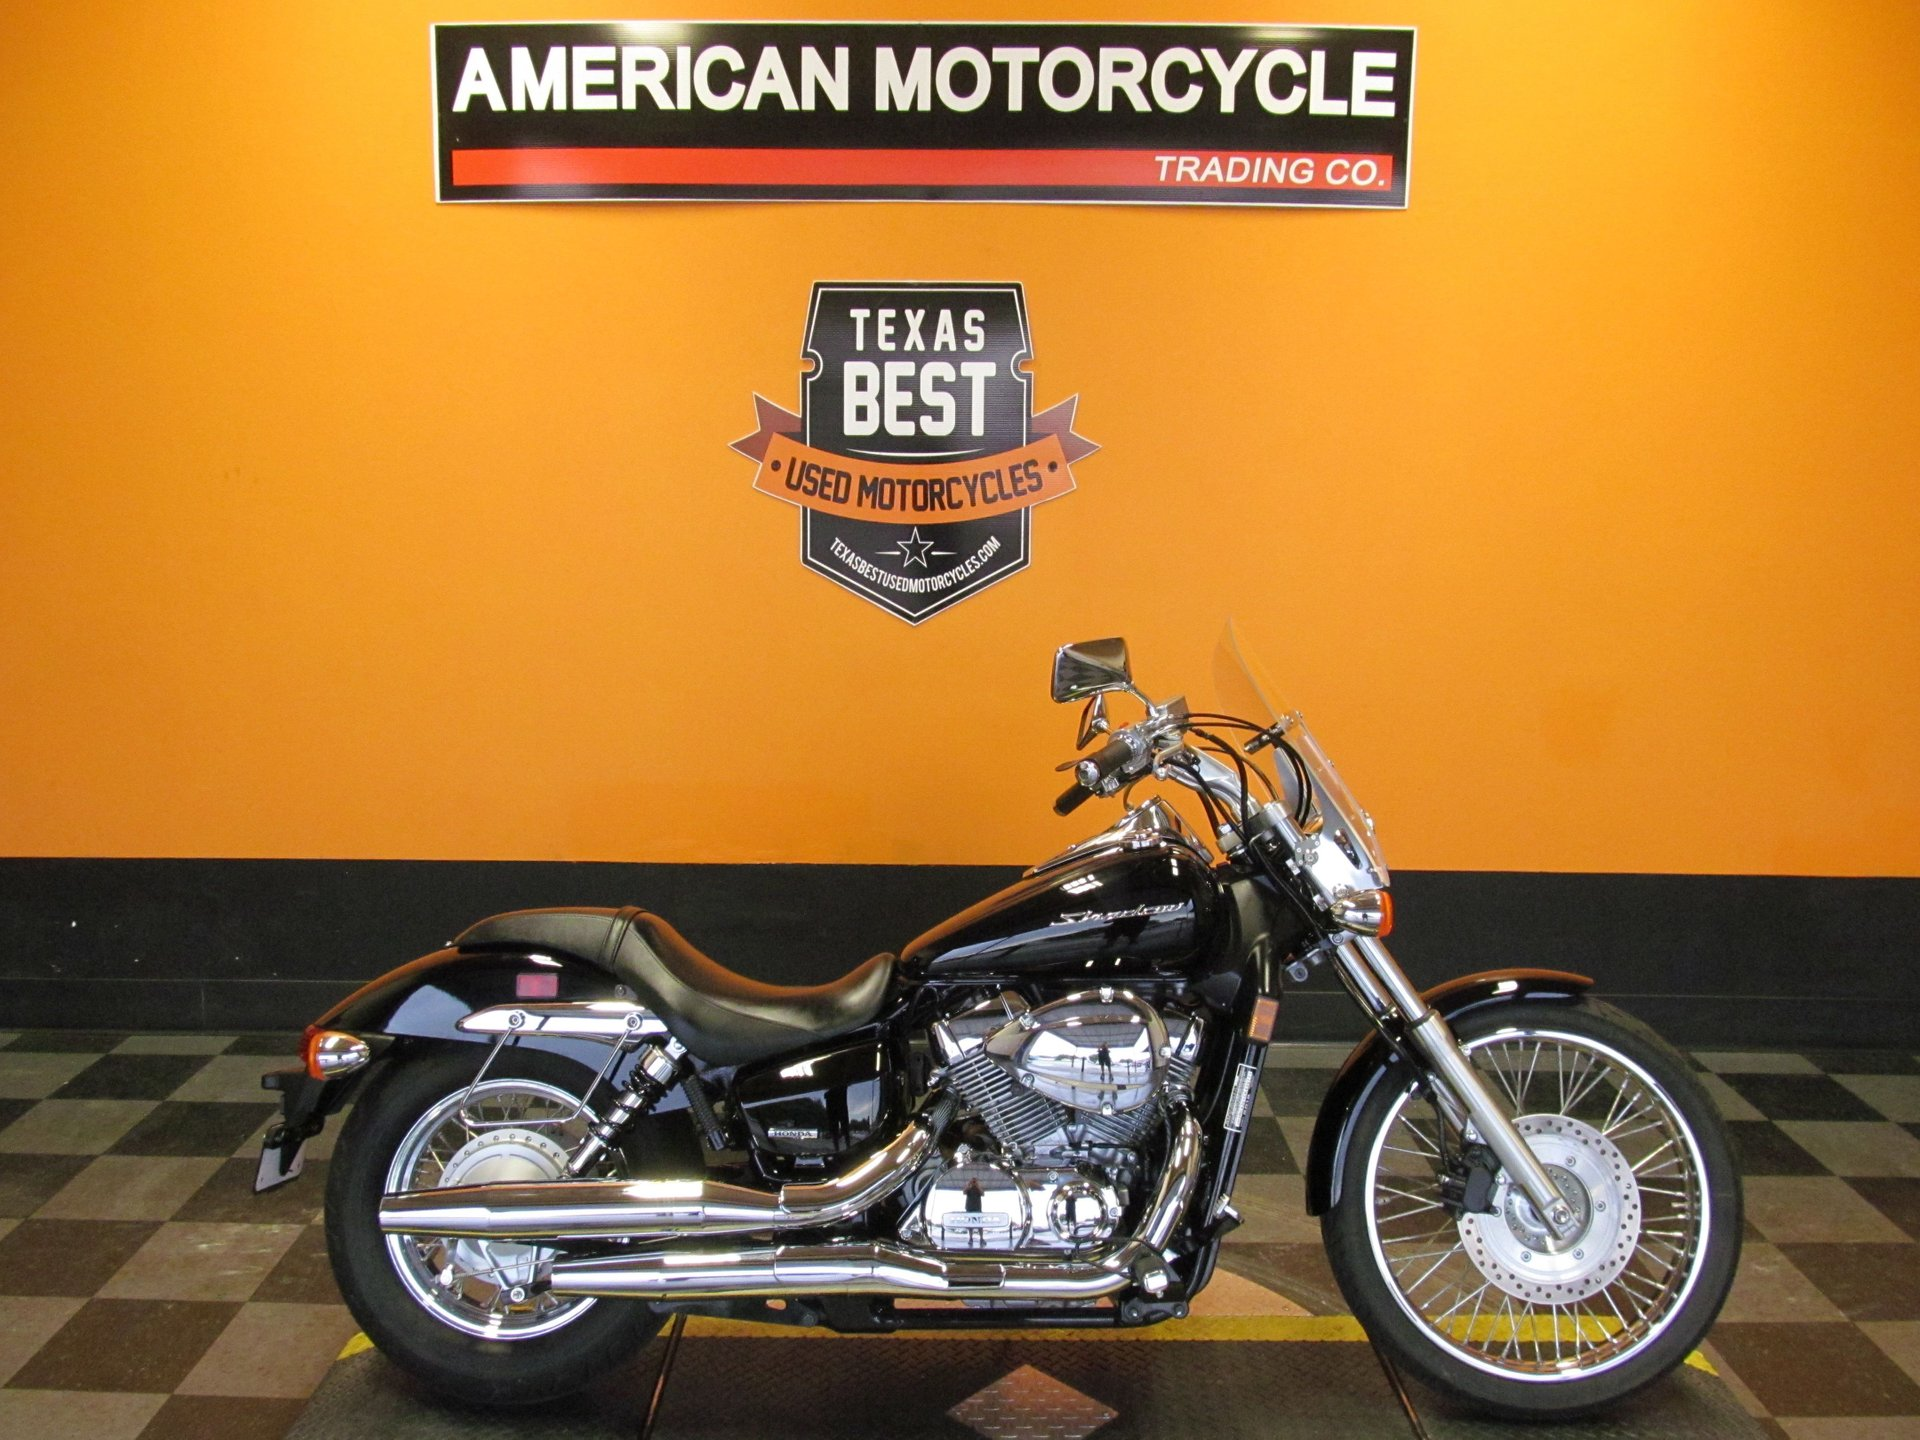 2012 honda shadow spirit vt750c2